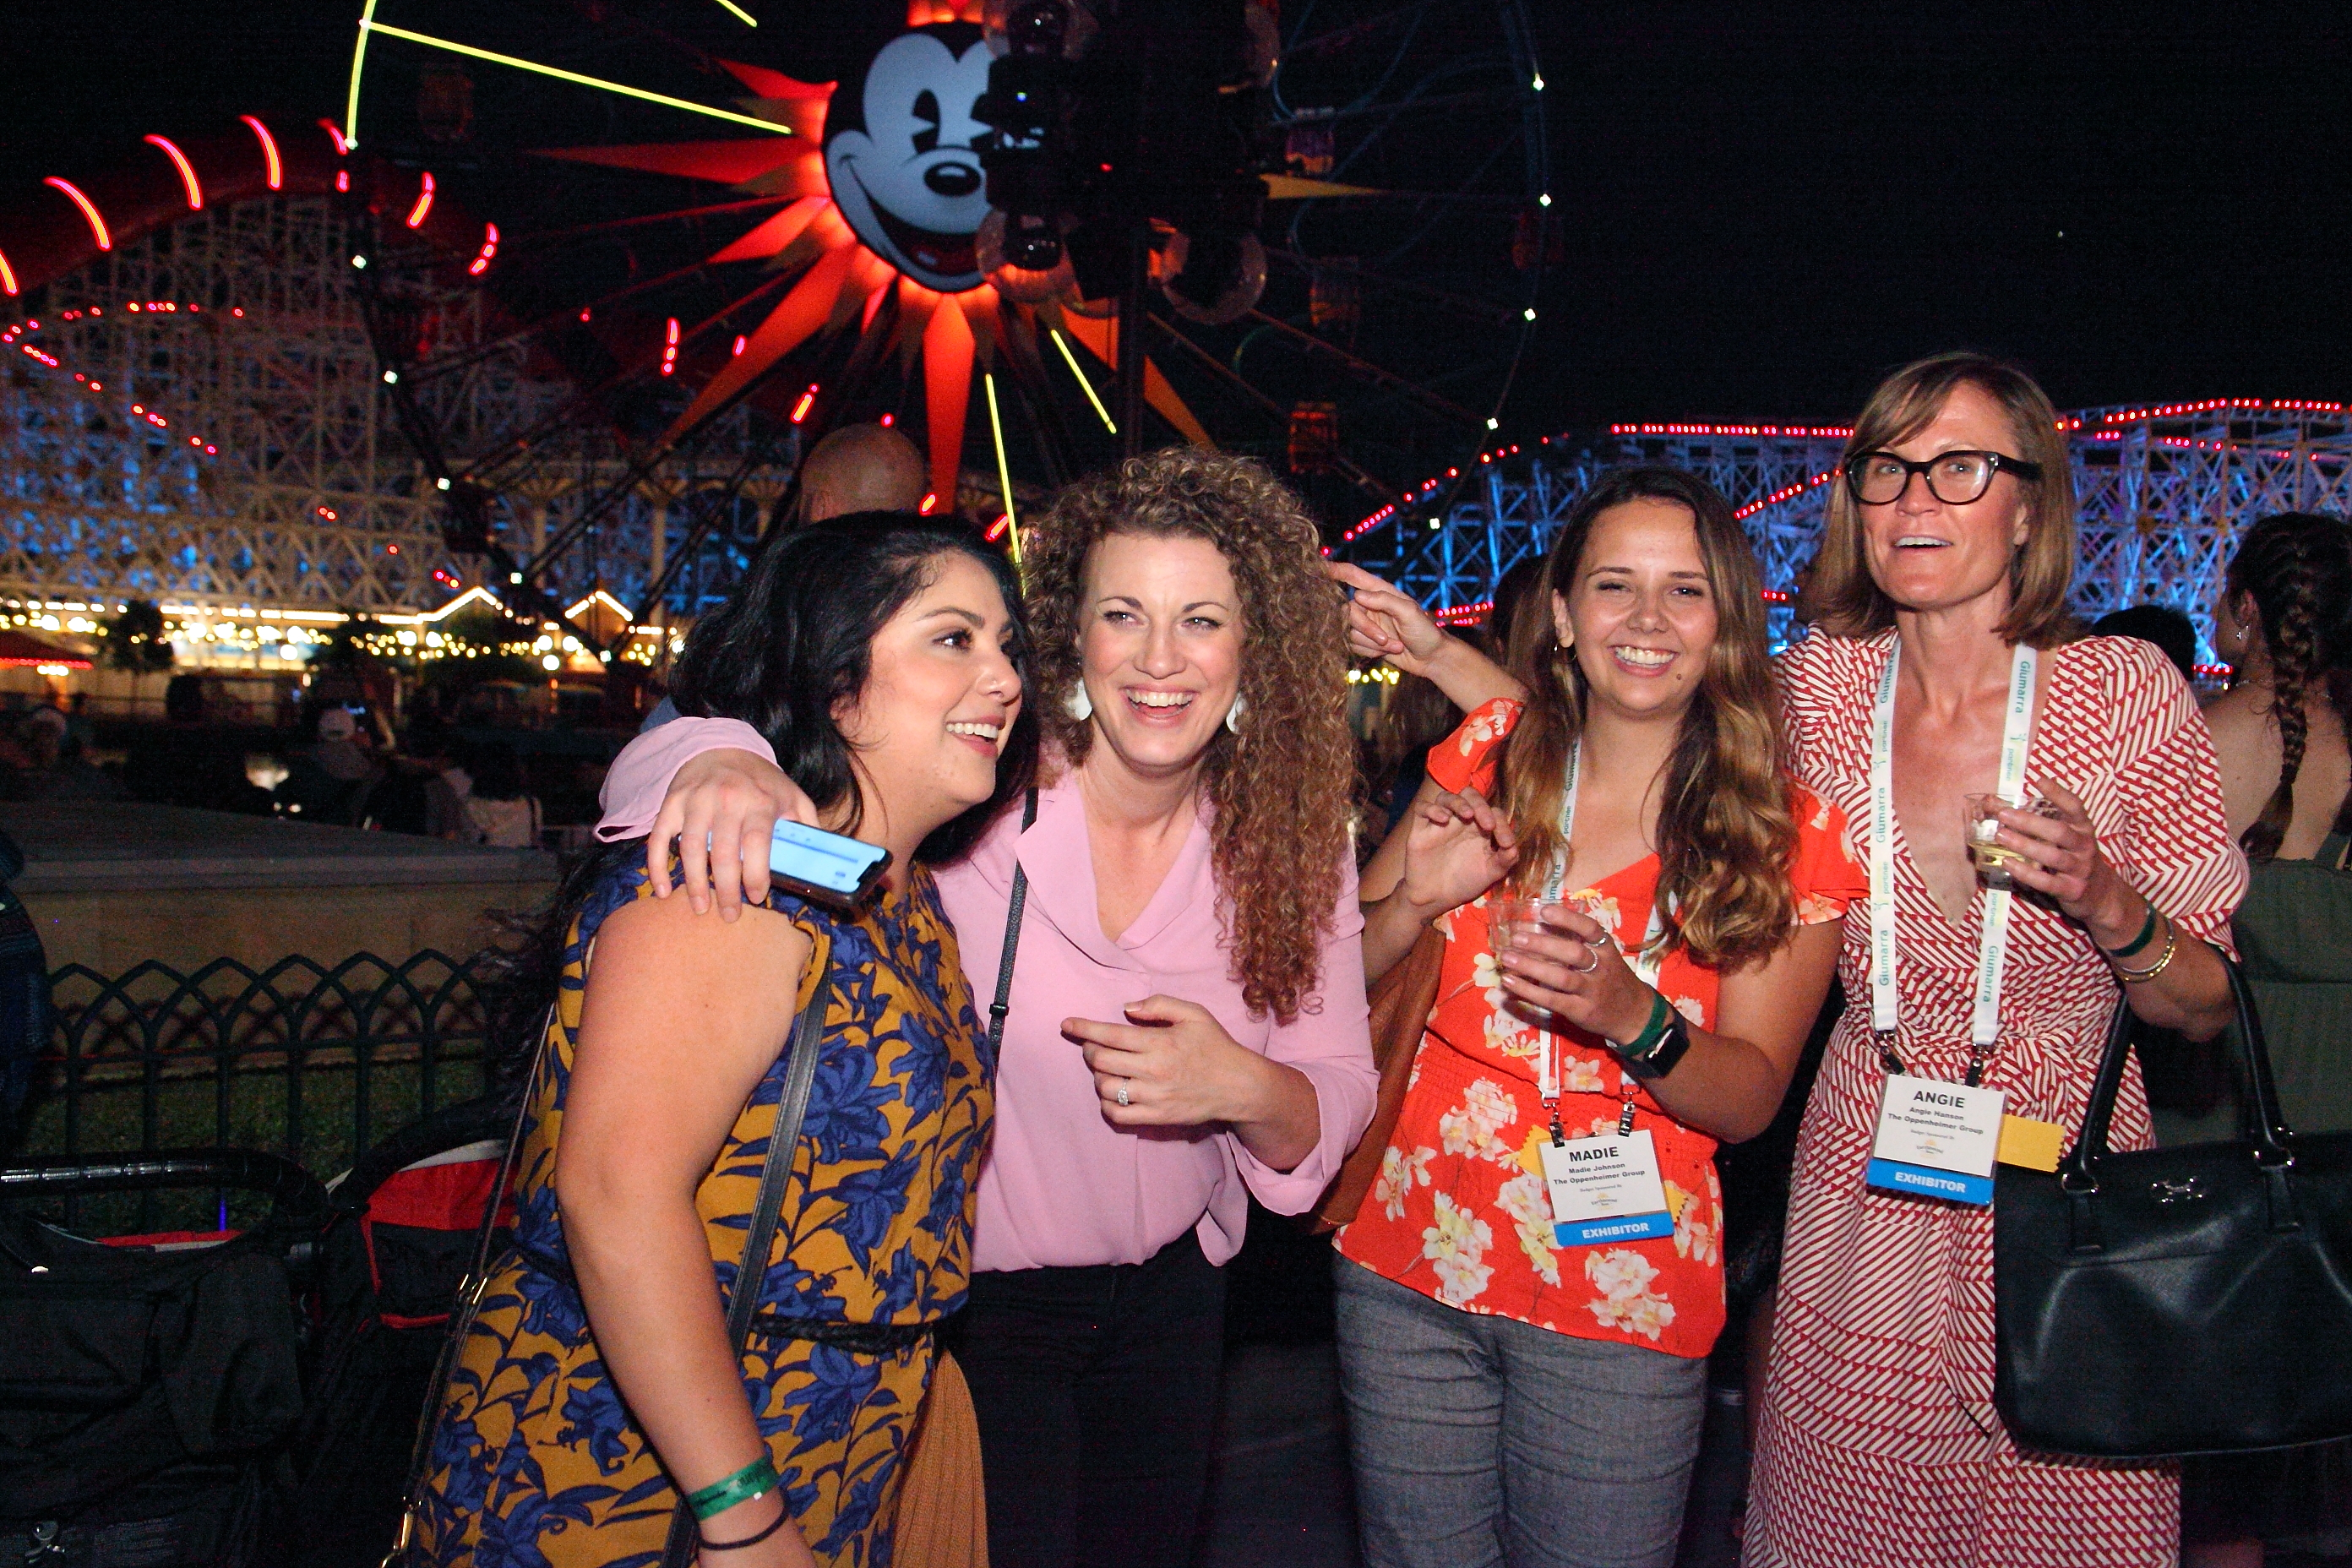 Ambar Rodriguez, Kori Martin, Madie Johnson and Angie Hanson from The Oppenheimer Group are eager for World of Color to begin